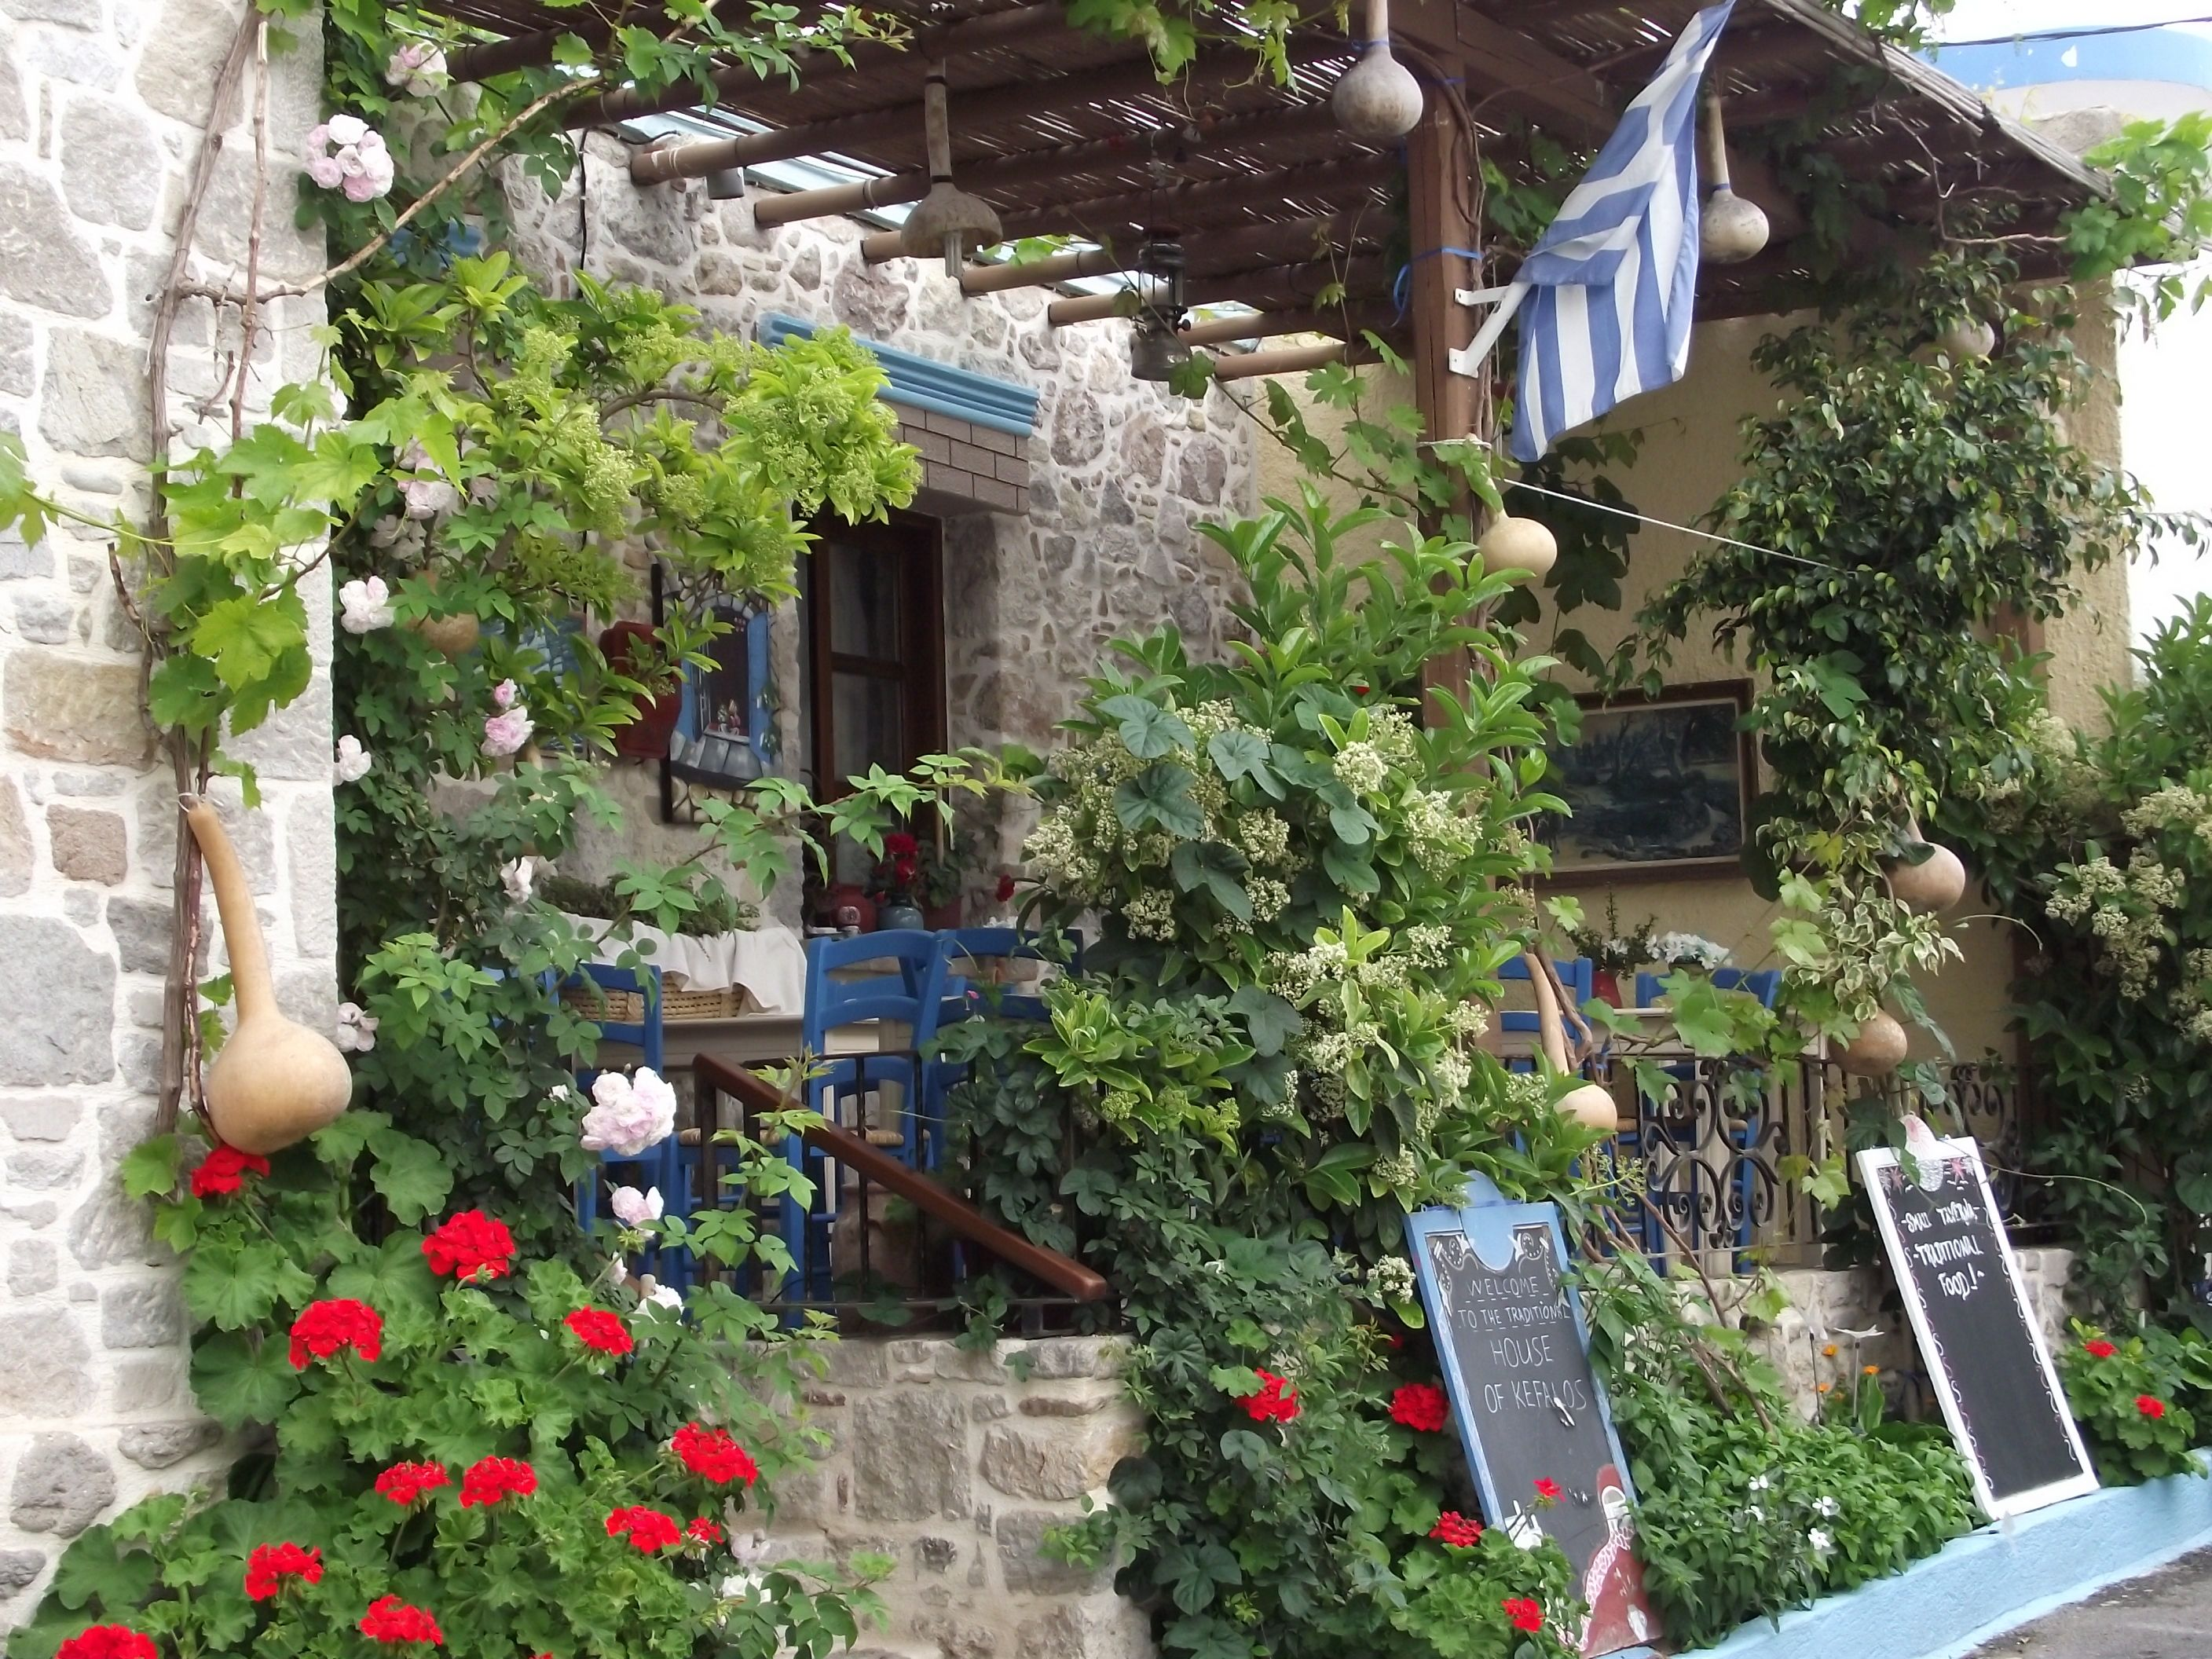 Traditional Greek House traditional greek house and restaurant, old town kefalos | kos and